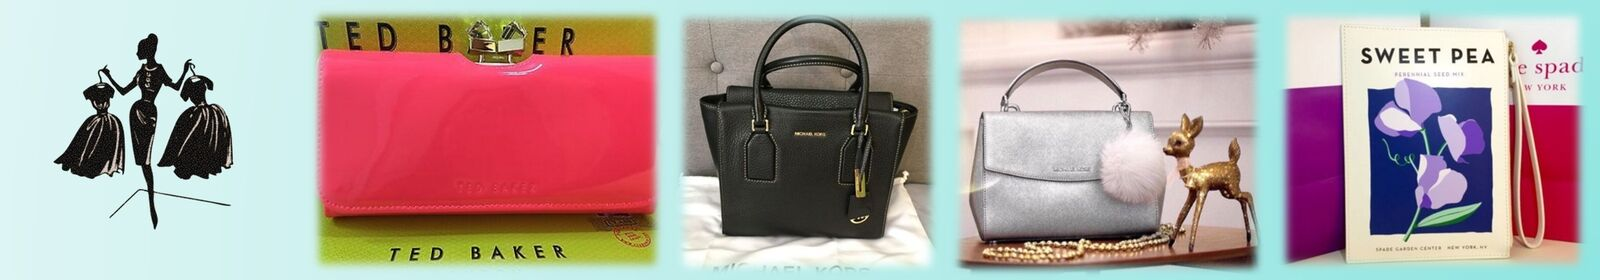 StayChic Designer Bags and Plus USA